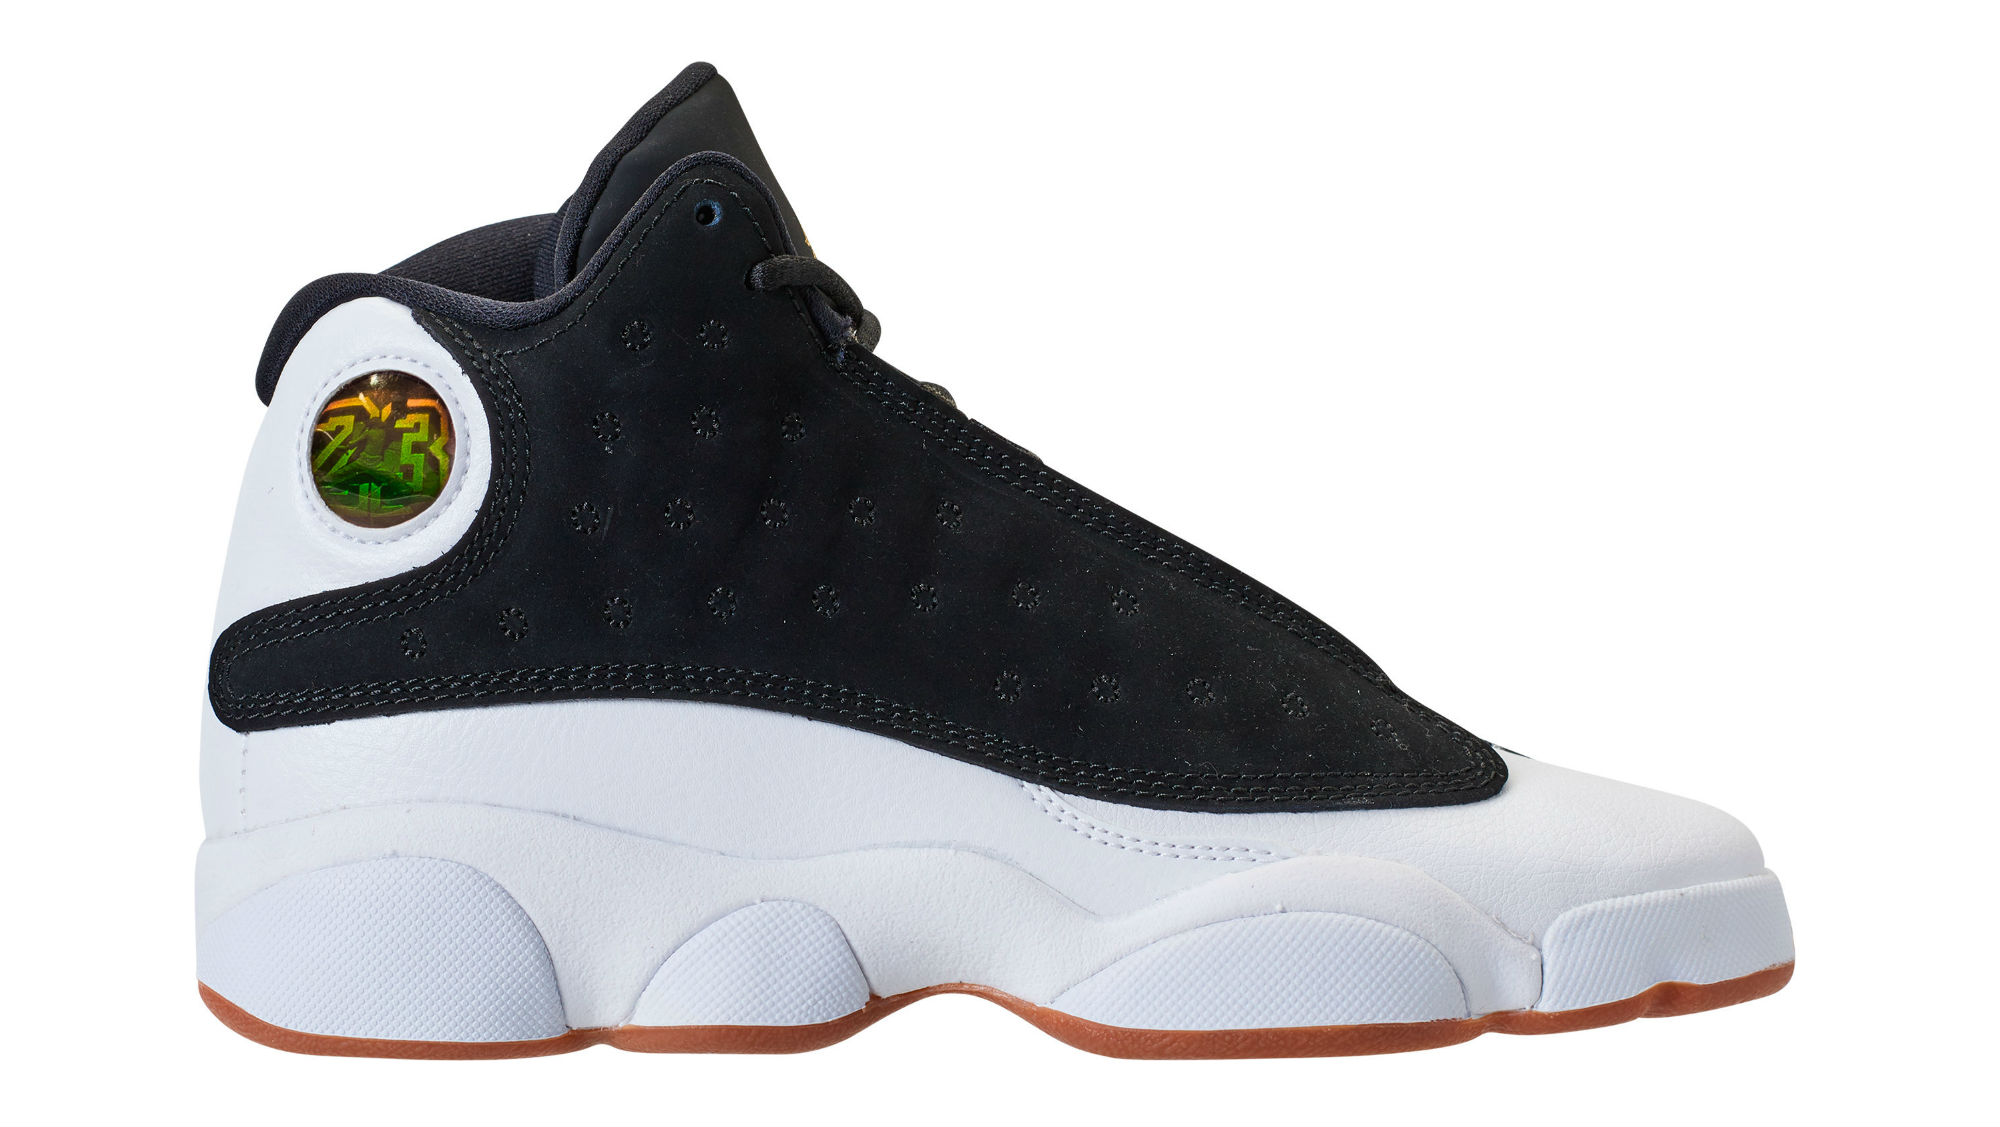 new concept 252a9 101e0 Air Jordan 13 Girls Black Gold White Gum Release Date 439358-021   Sole  Collector